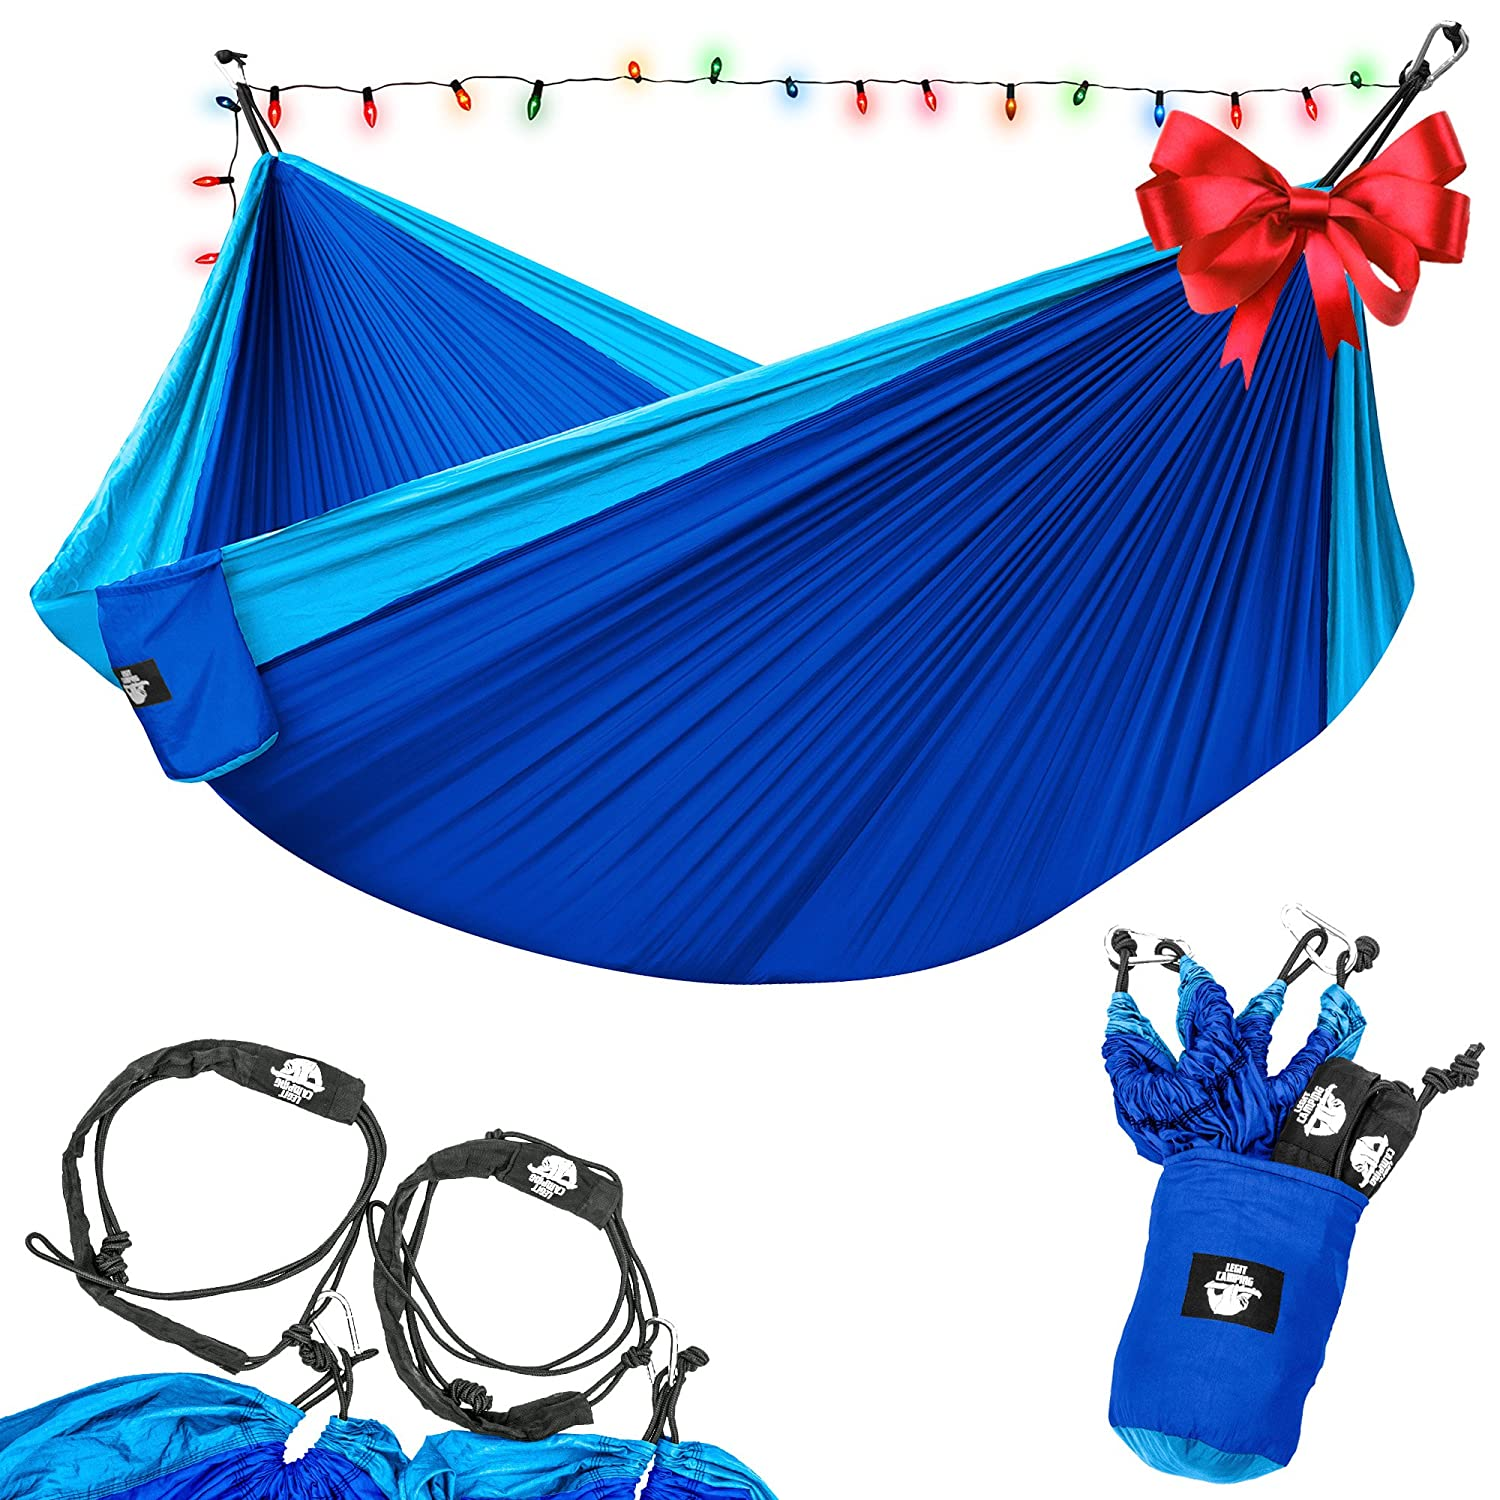 Best Hammock Tent-Legit Camping - Double Hammock - Lightweight Parachute Portable Hammocks for Hiking , Travel , Backpacking , Beach , Yard . Gear Includes Nylon Straps & Steel Carabiners